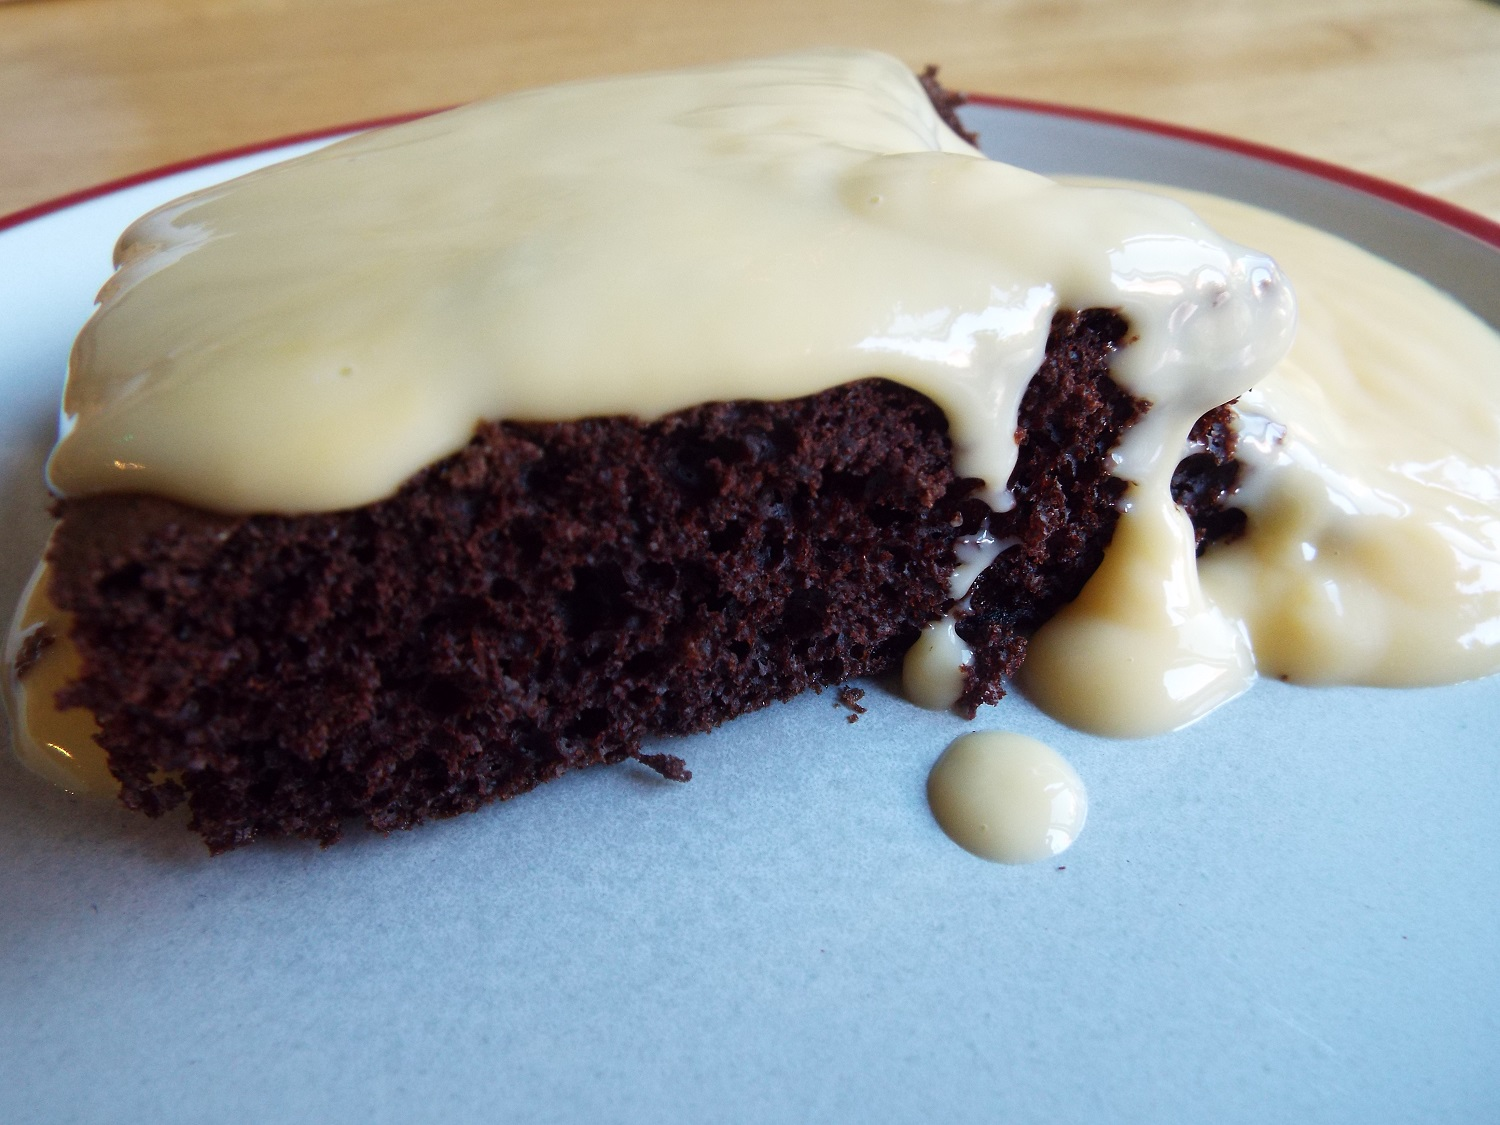 Cheap as chips and out of packets if necessary - chocolate sponge tray bake with optional custard